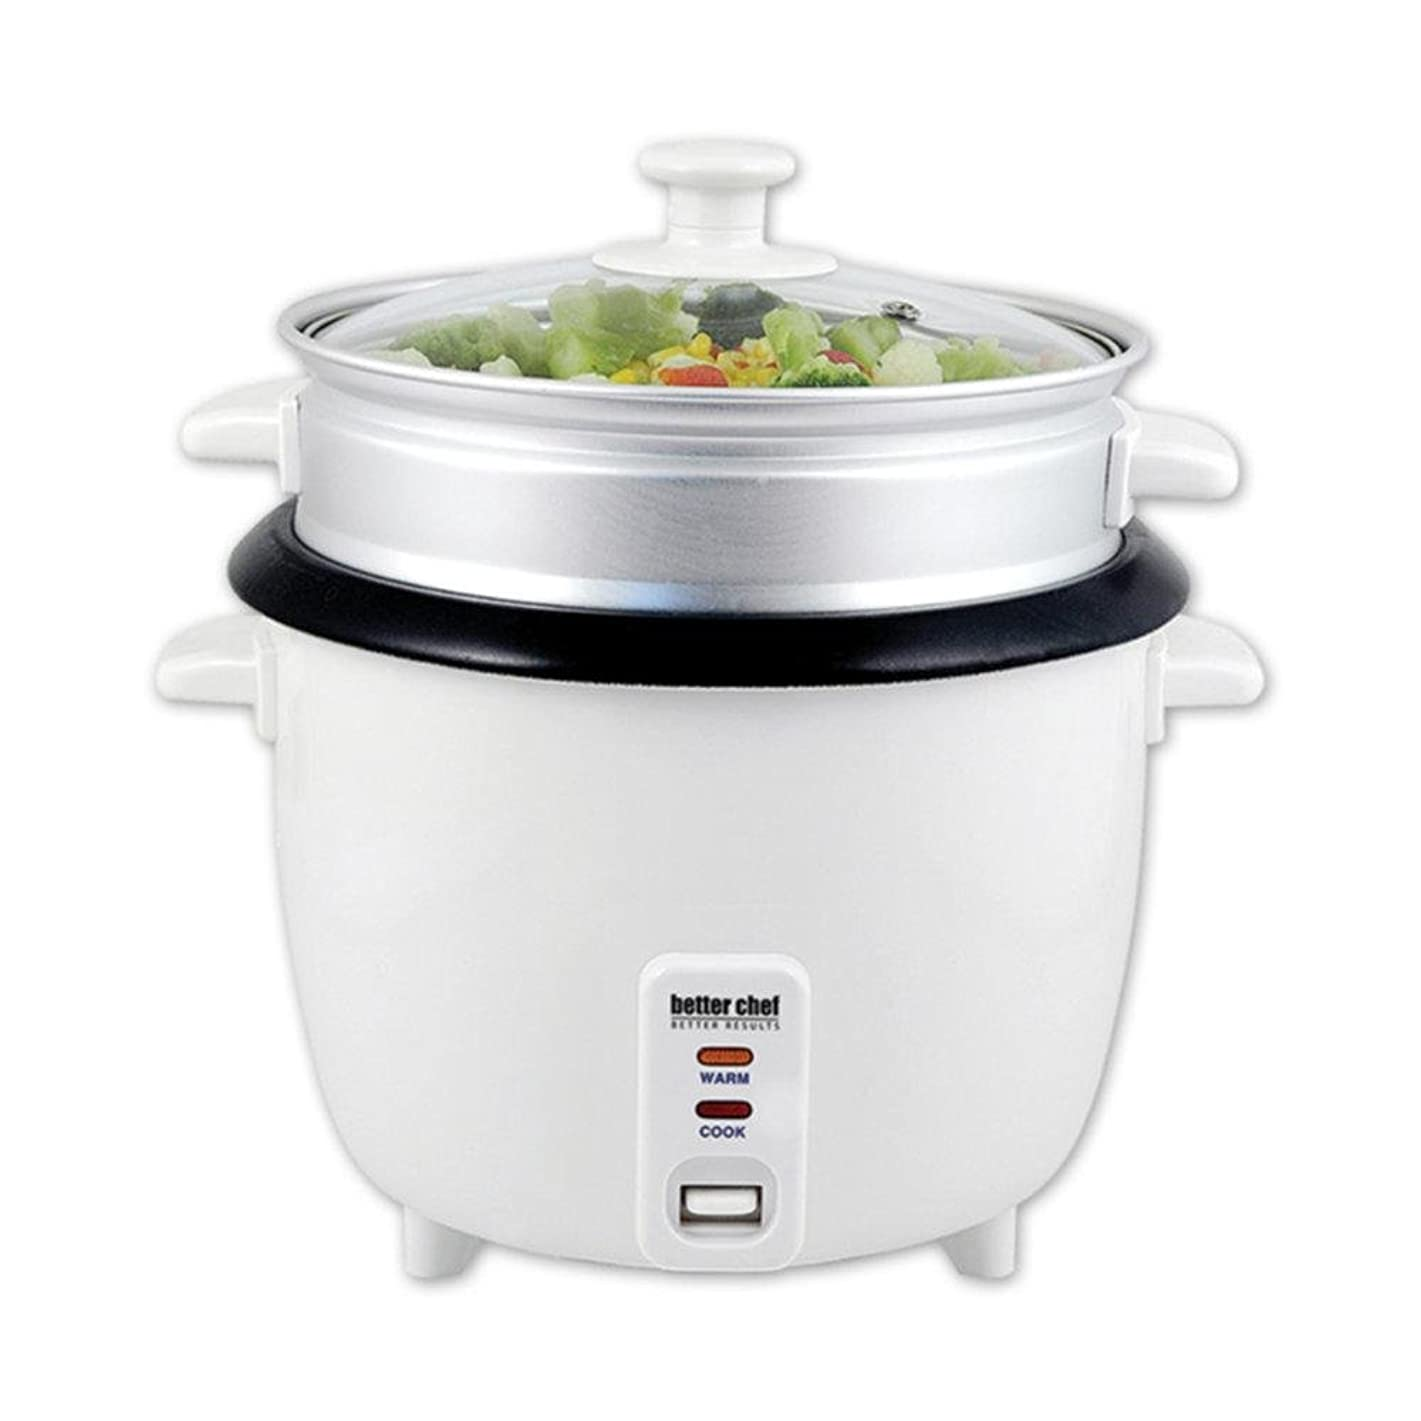 Better Chef Rice Cooker with Food Steamer Attachment consumer electronics